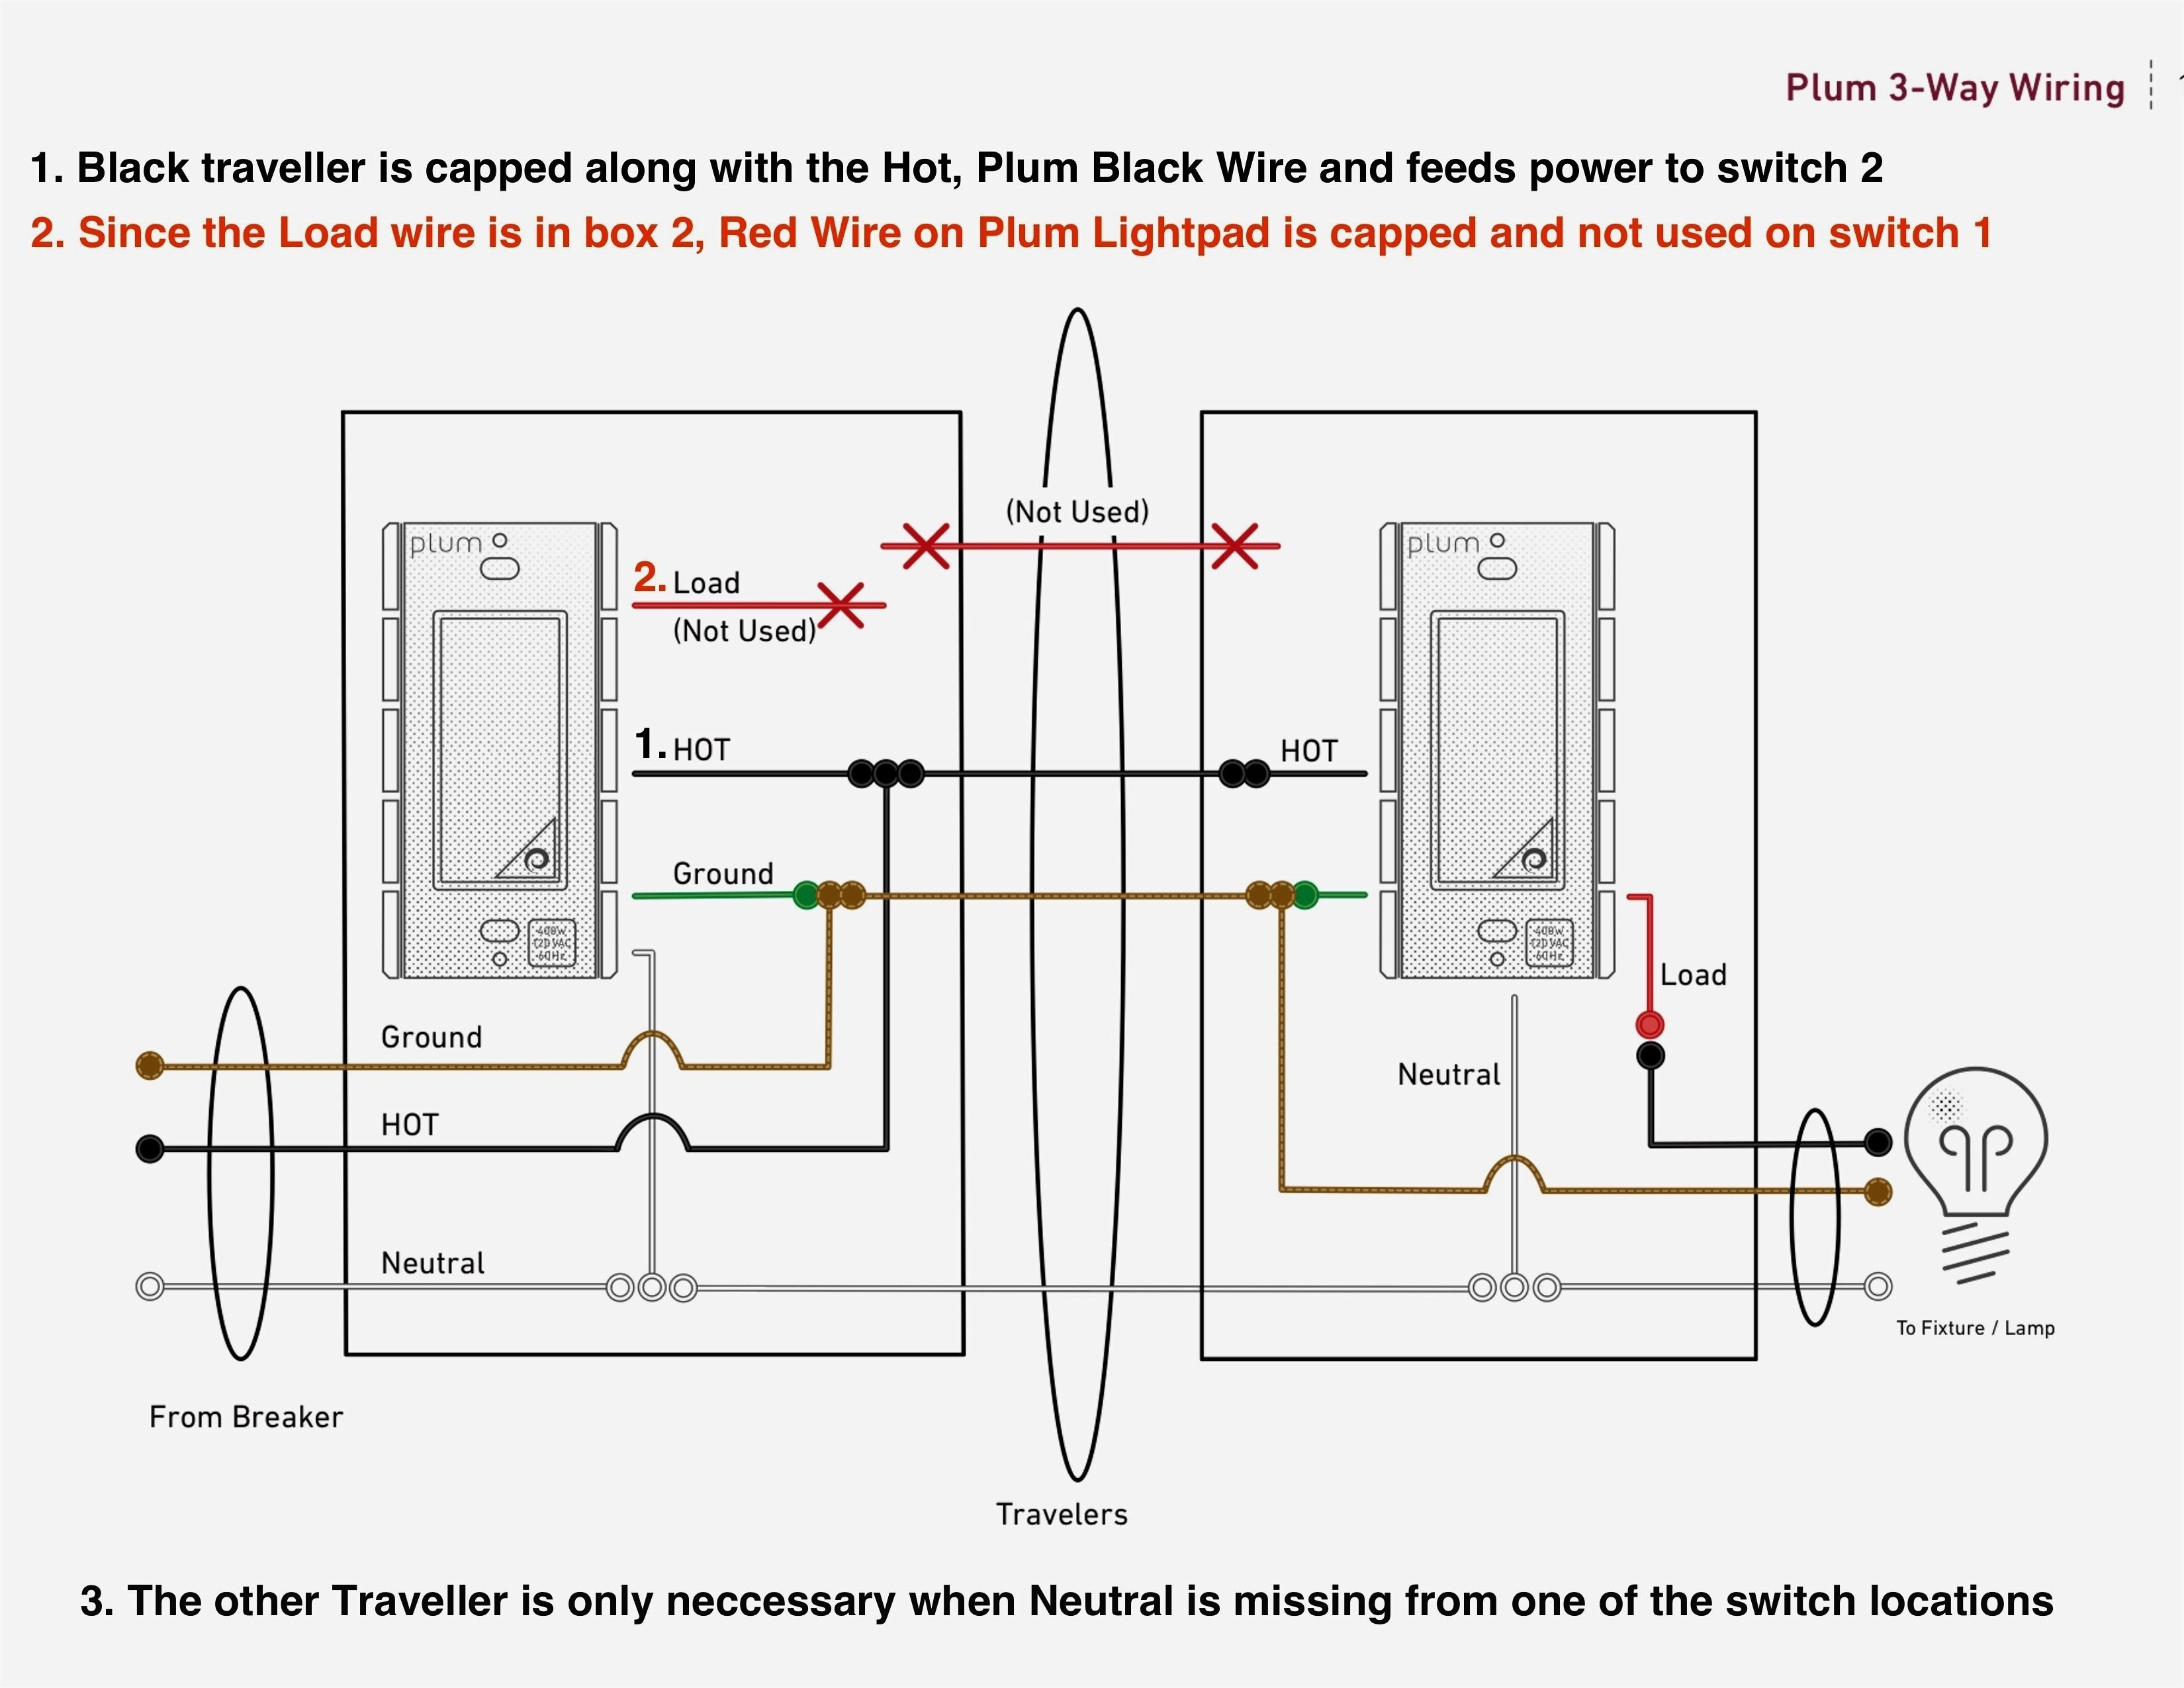 3 Way Lutron Skylark Dimmer Wiring Diagram | Manual E-Books - Lutron 3 Way Dimmer Switch Wiring Diagram